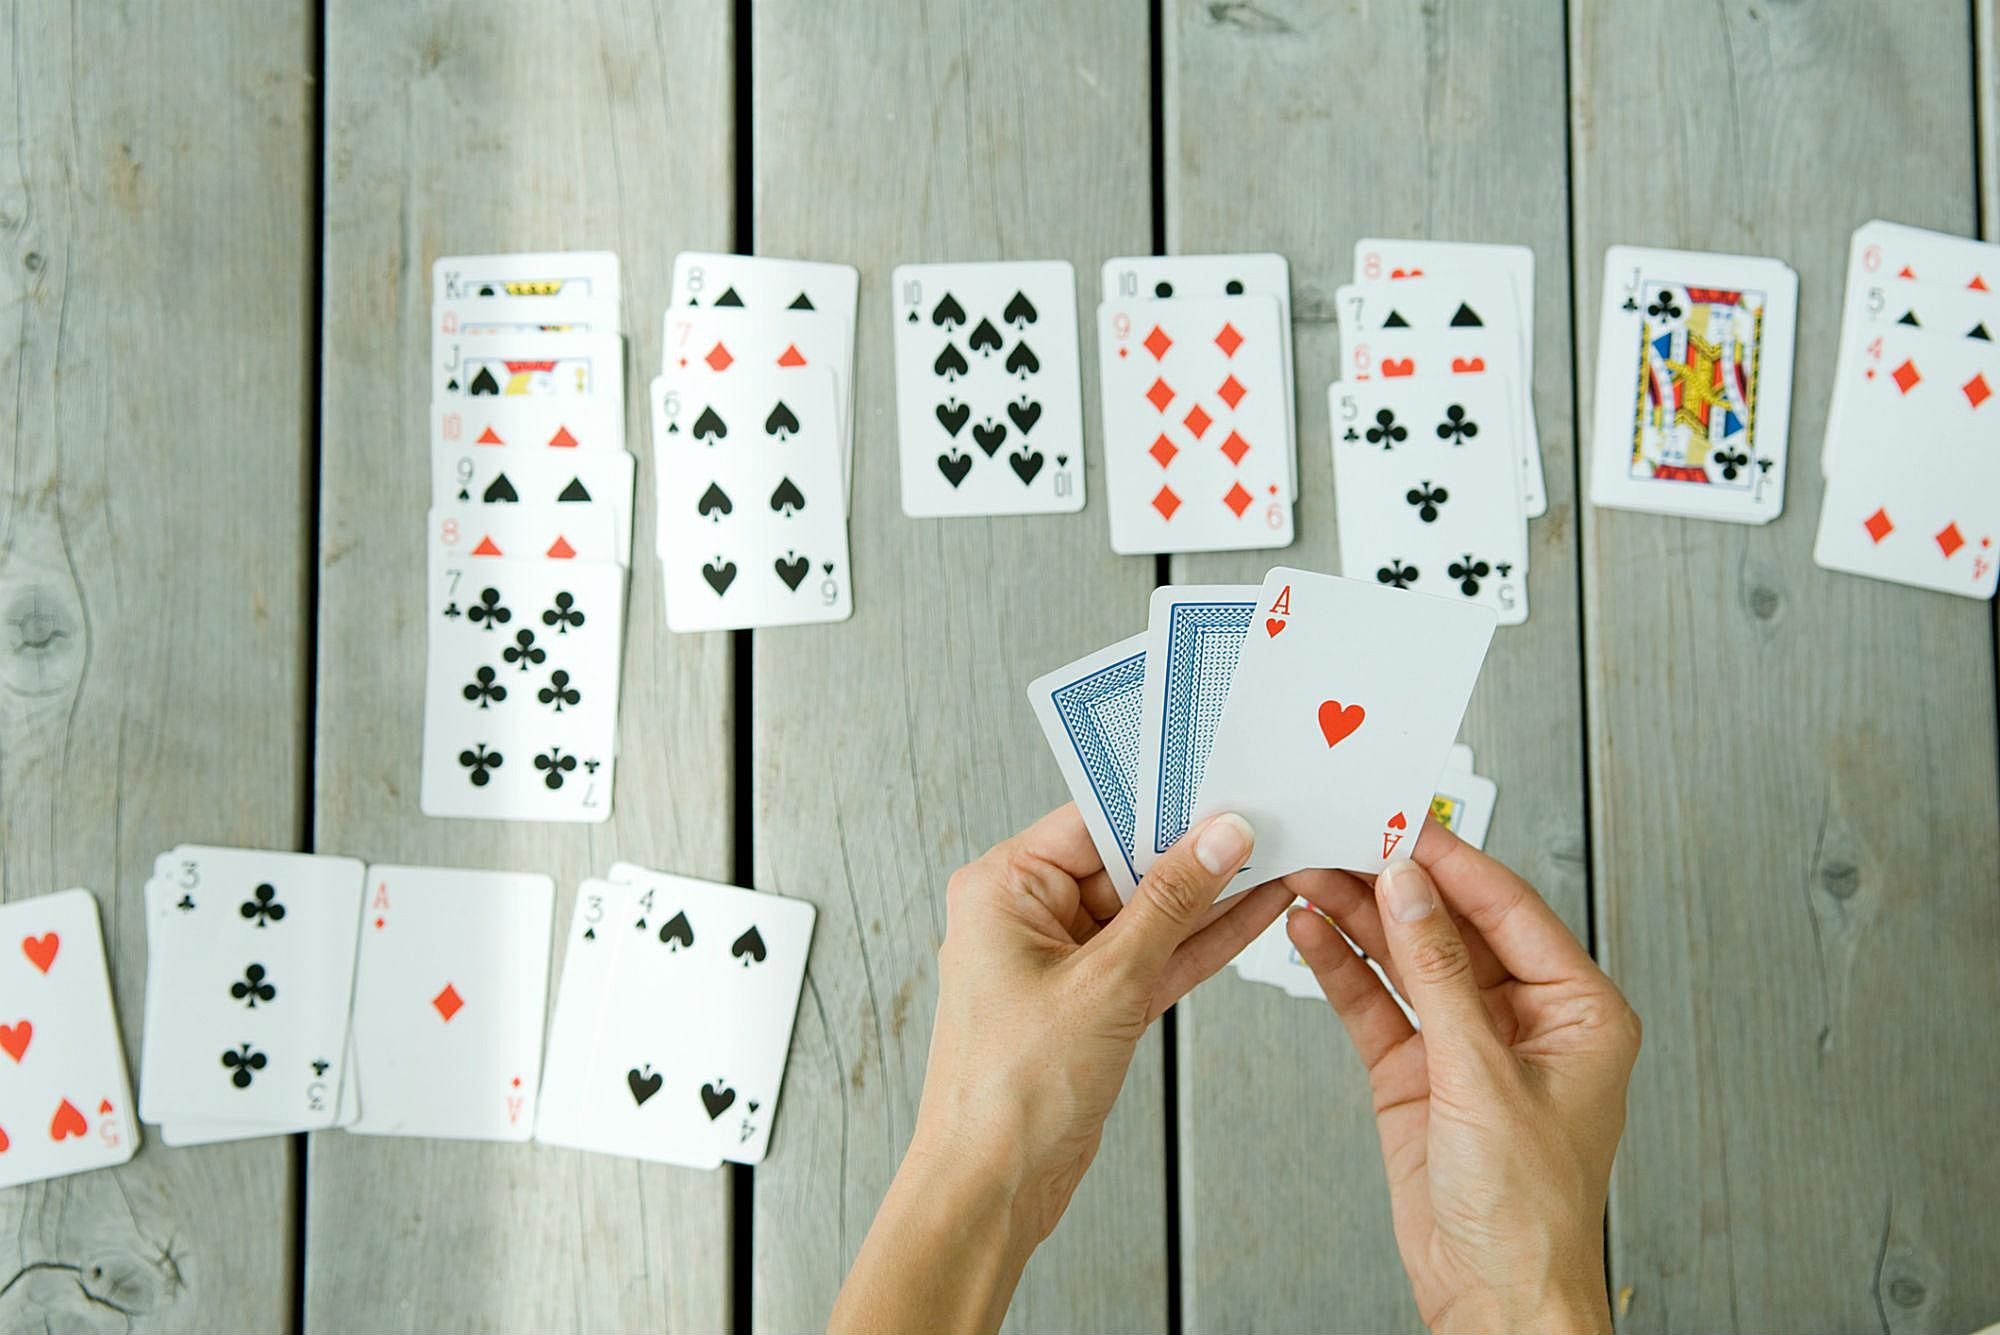 Learn how to play Baker's Dozen Solitaire, a solitaire